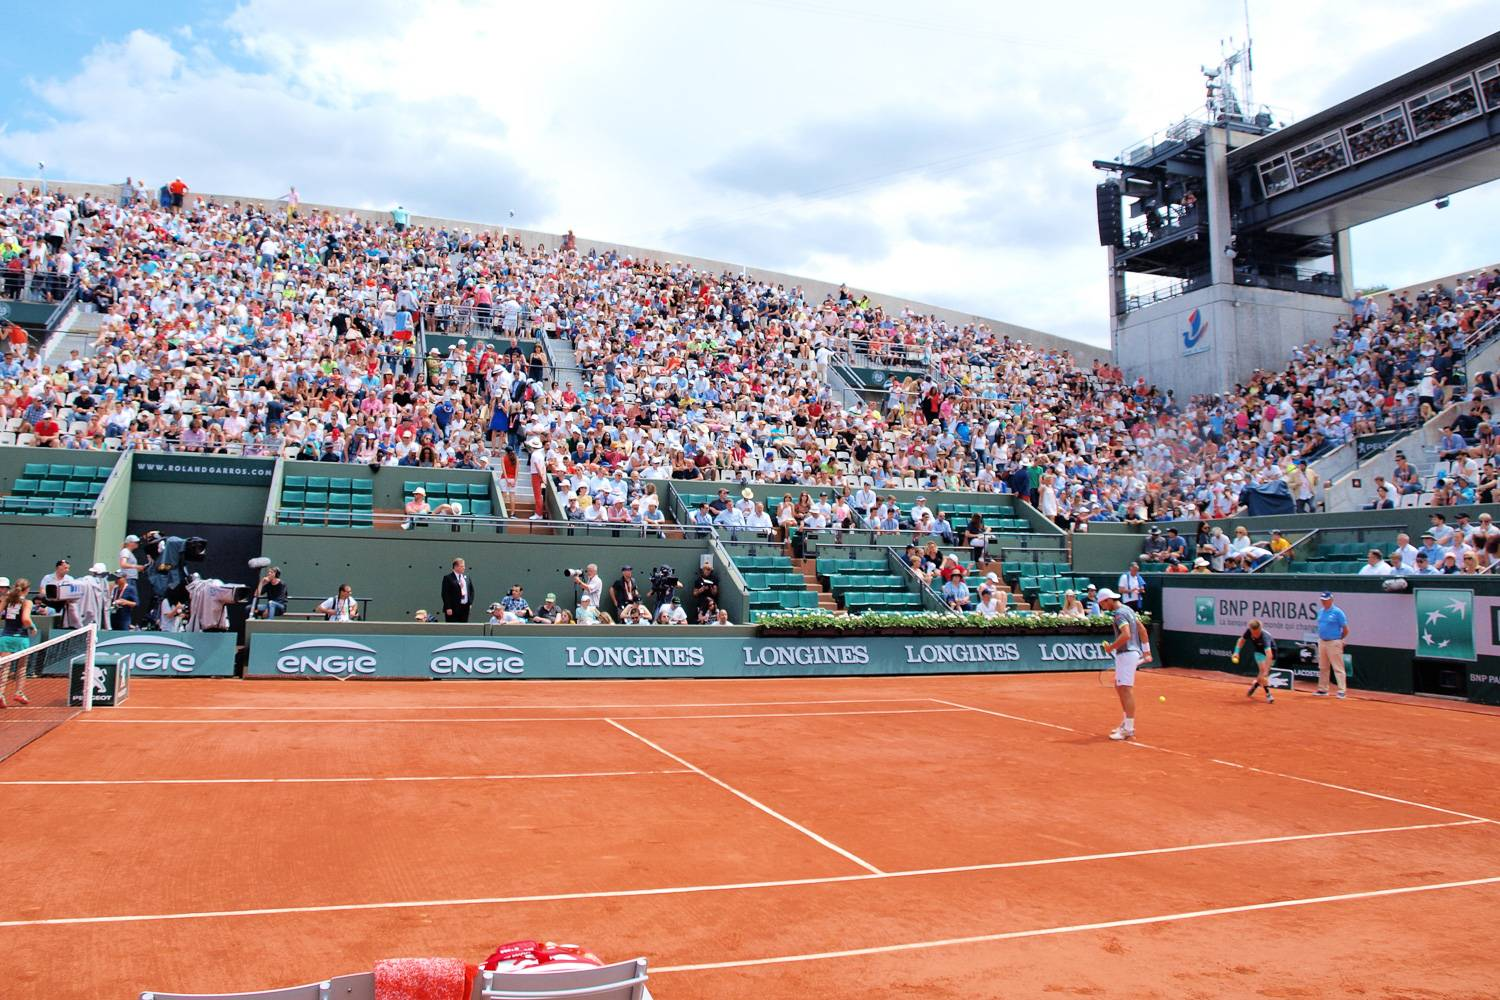 Image of players on the clay court at Roland-Garros in Paris.